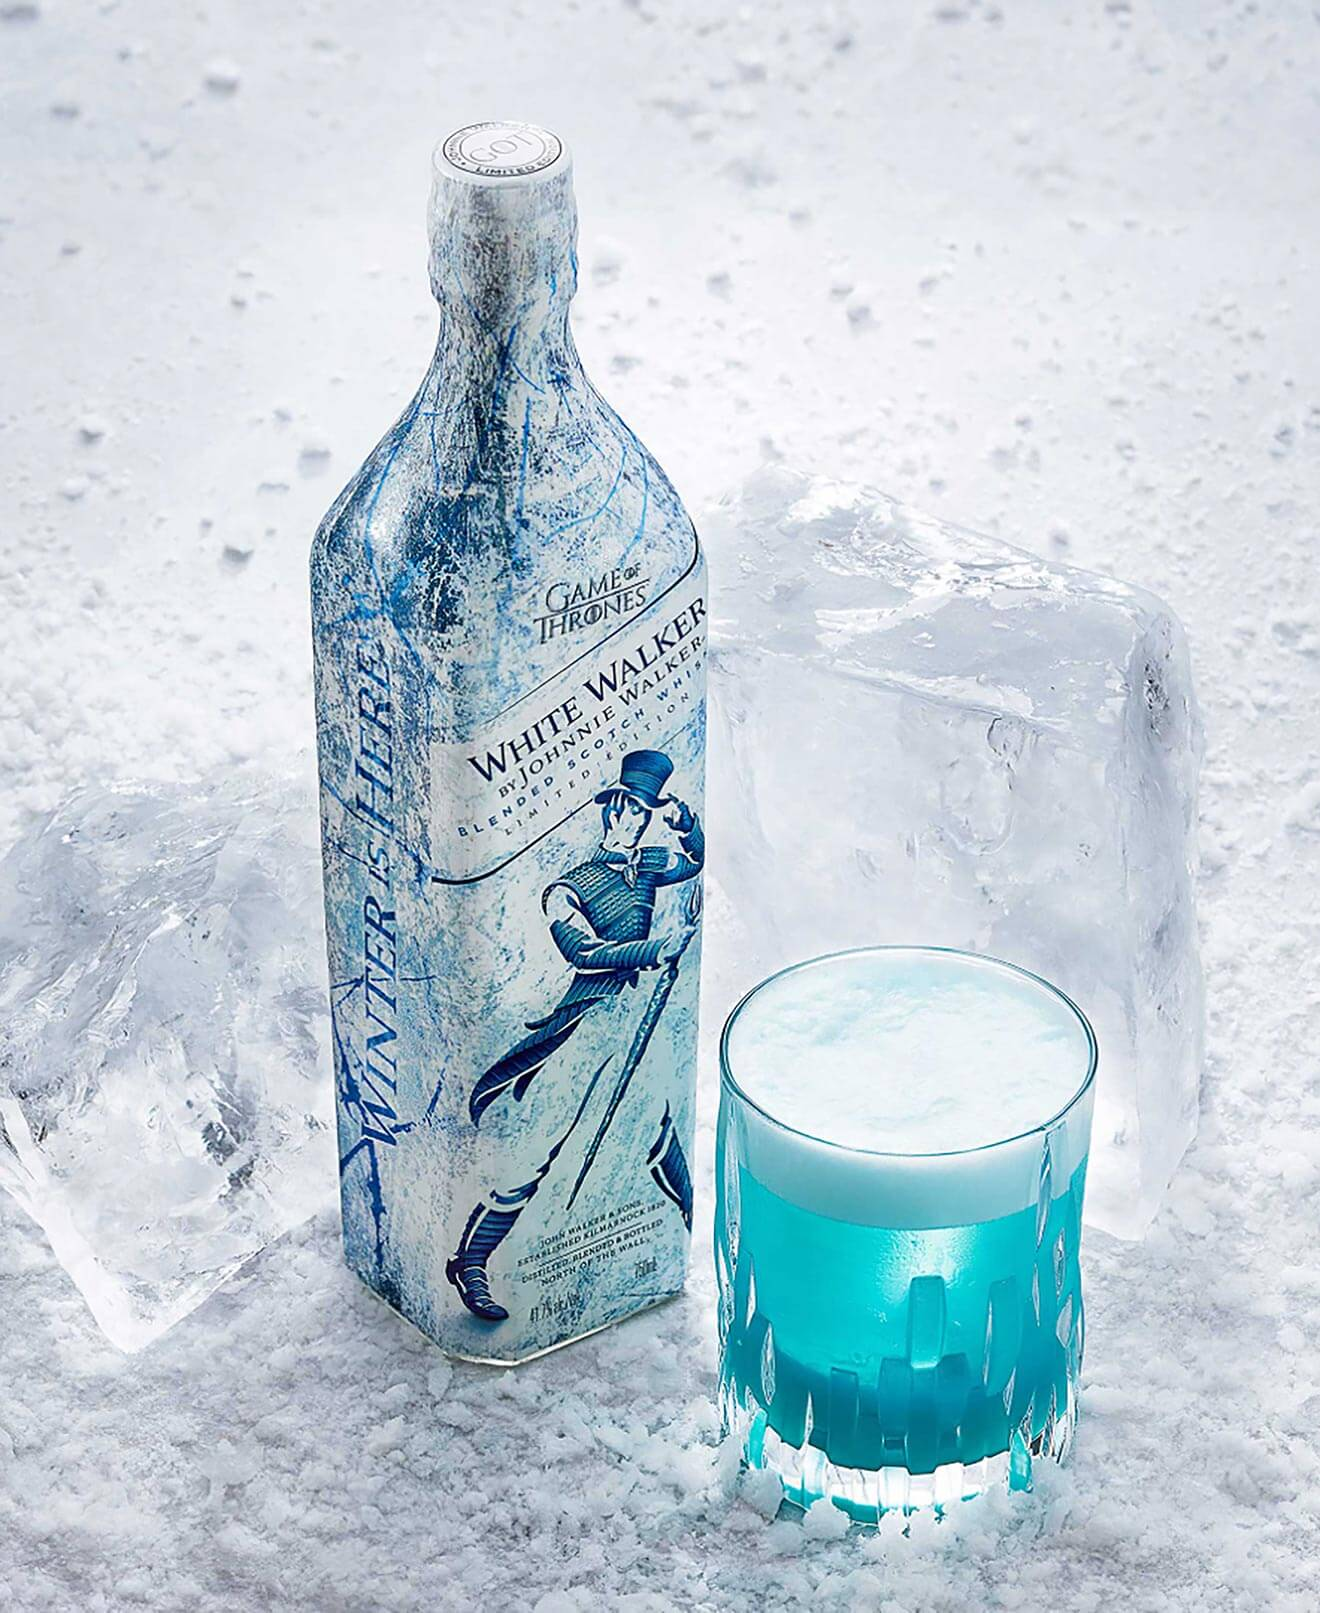 Johnnie Walker White Walker, bottle and glass